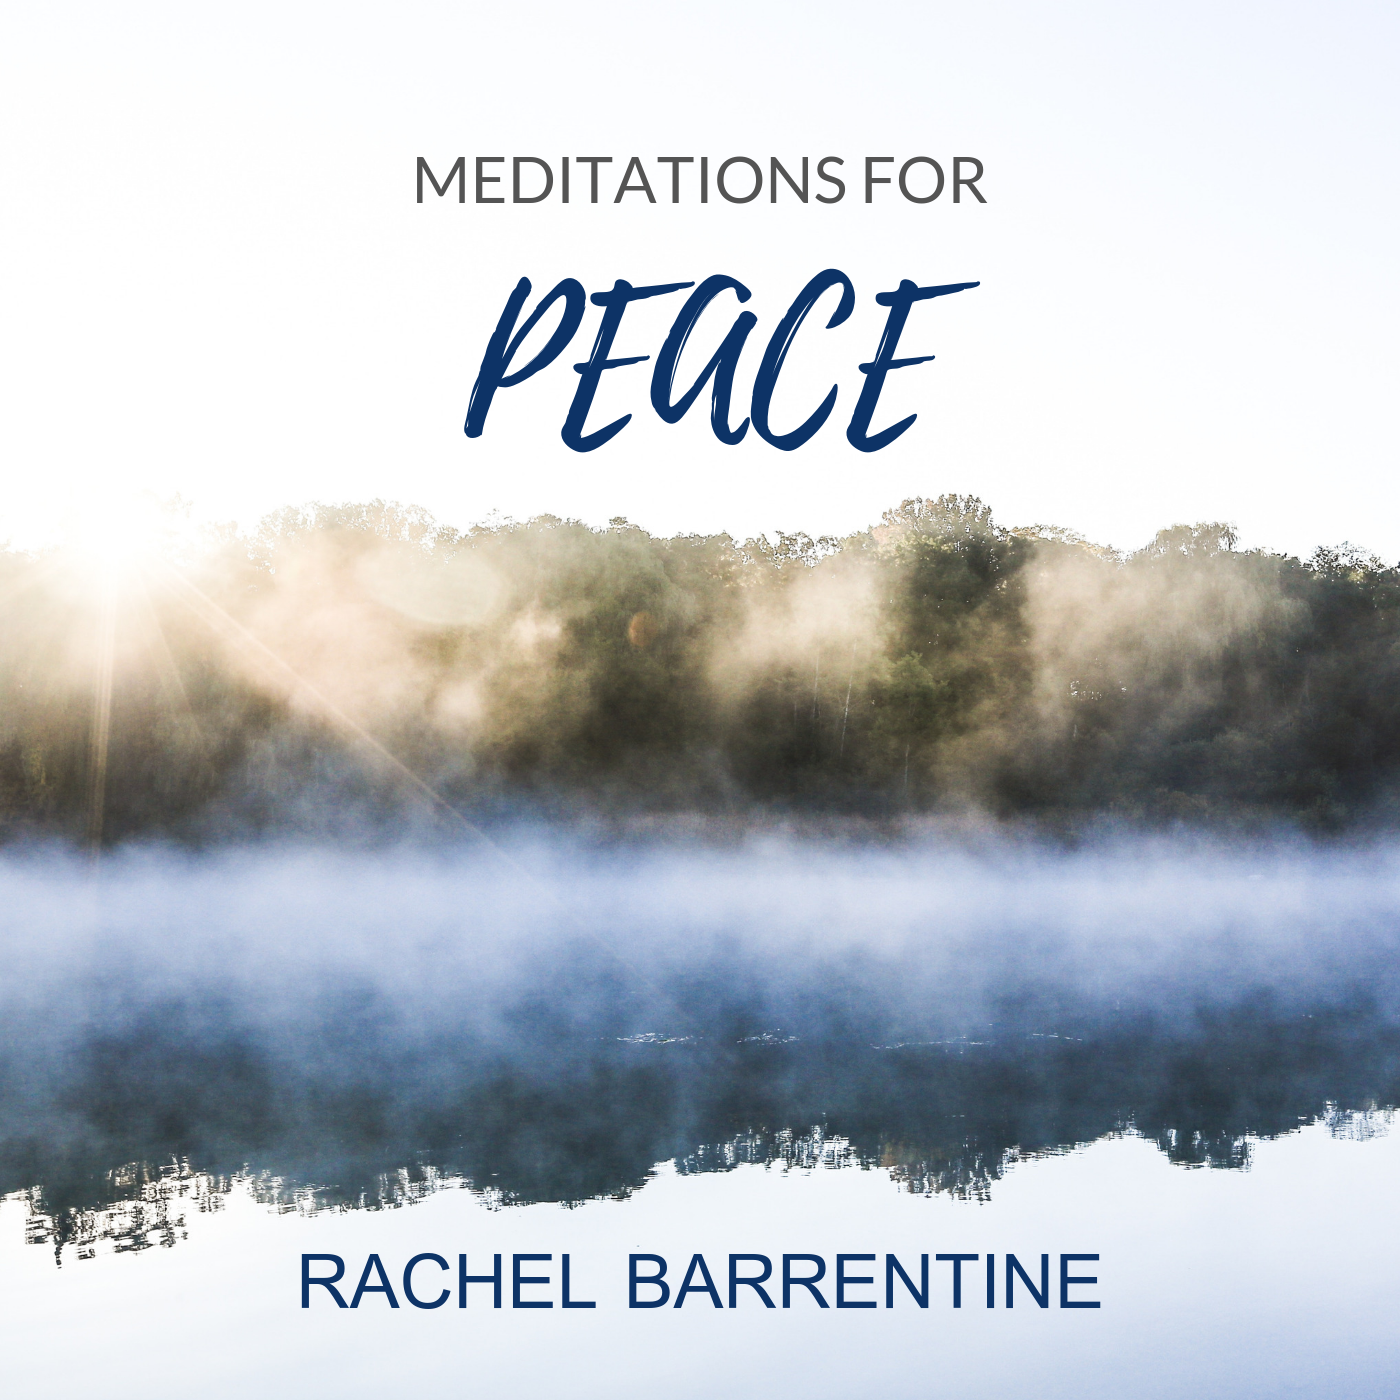 Meditations for Peace - Buy Here